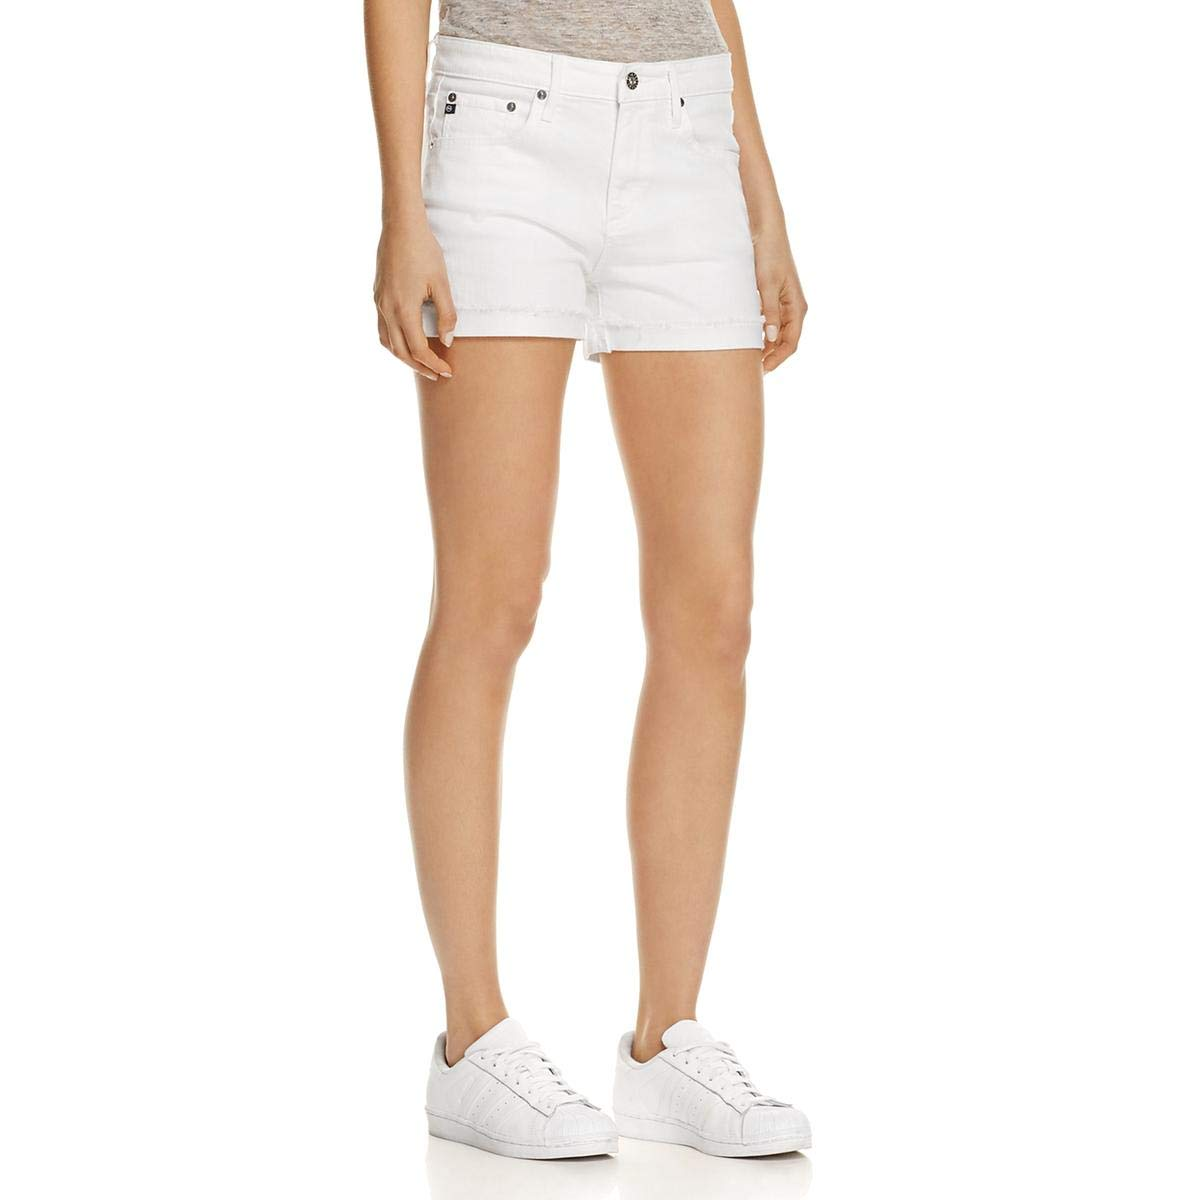 AG Adriano Goldschmied Women's Hailey Ex-Boyfriend Roll up Jean Short, White, 29